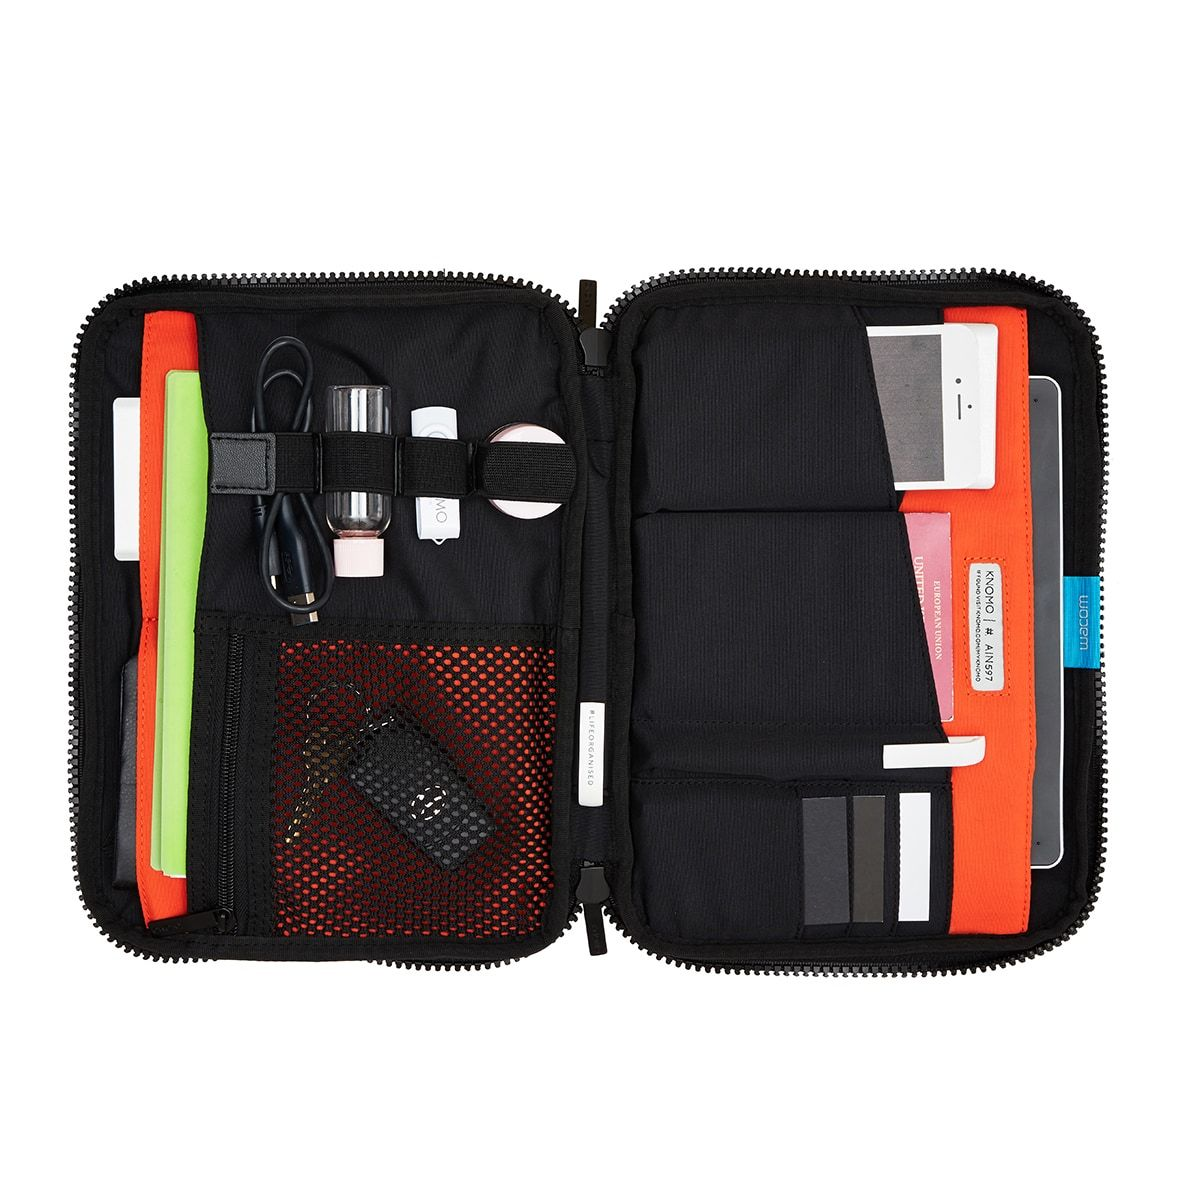 "KNOMO Thames Knomad Organiser Tech Organiser Internal With Items 10.5"" -  Black 